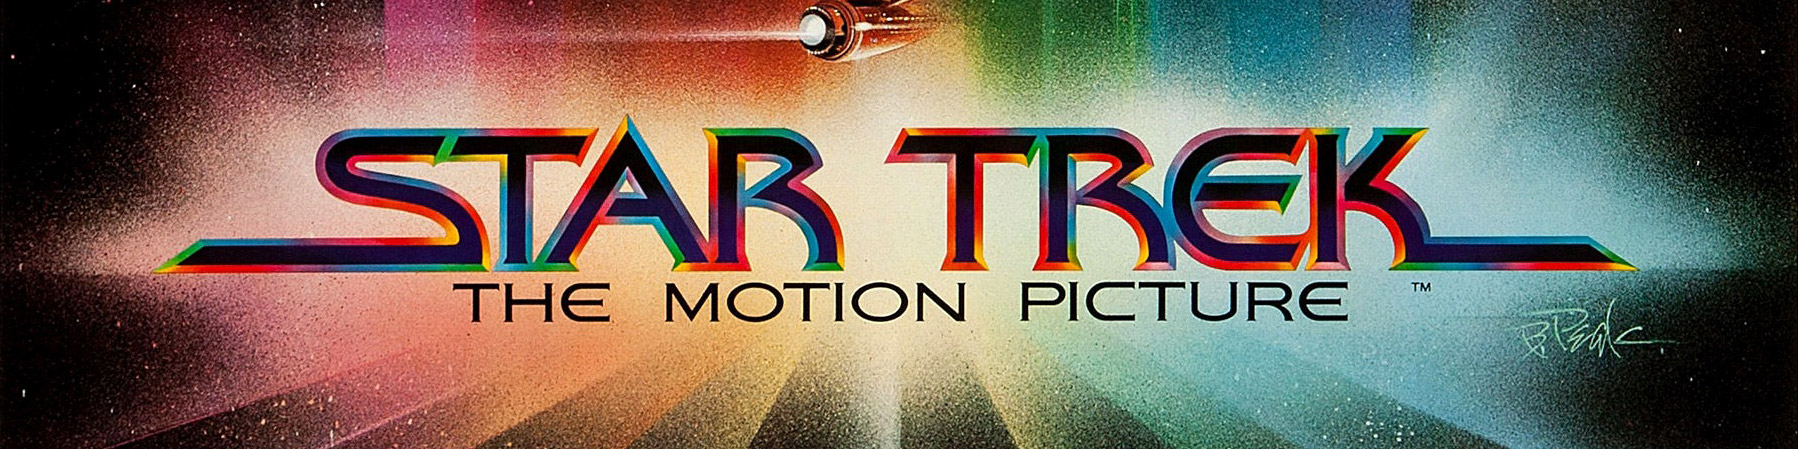 © 1979 Paramount Pictures – The Star Trek movie logo as seen on the poster designed by Bob Peak for the original motion picture. Click the image to see the complete poster on IMPAwards.